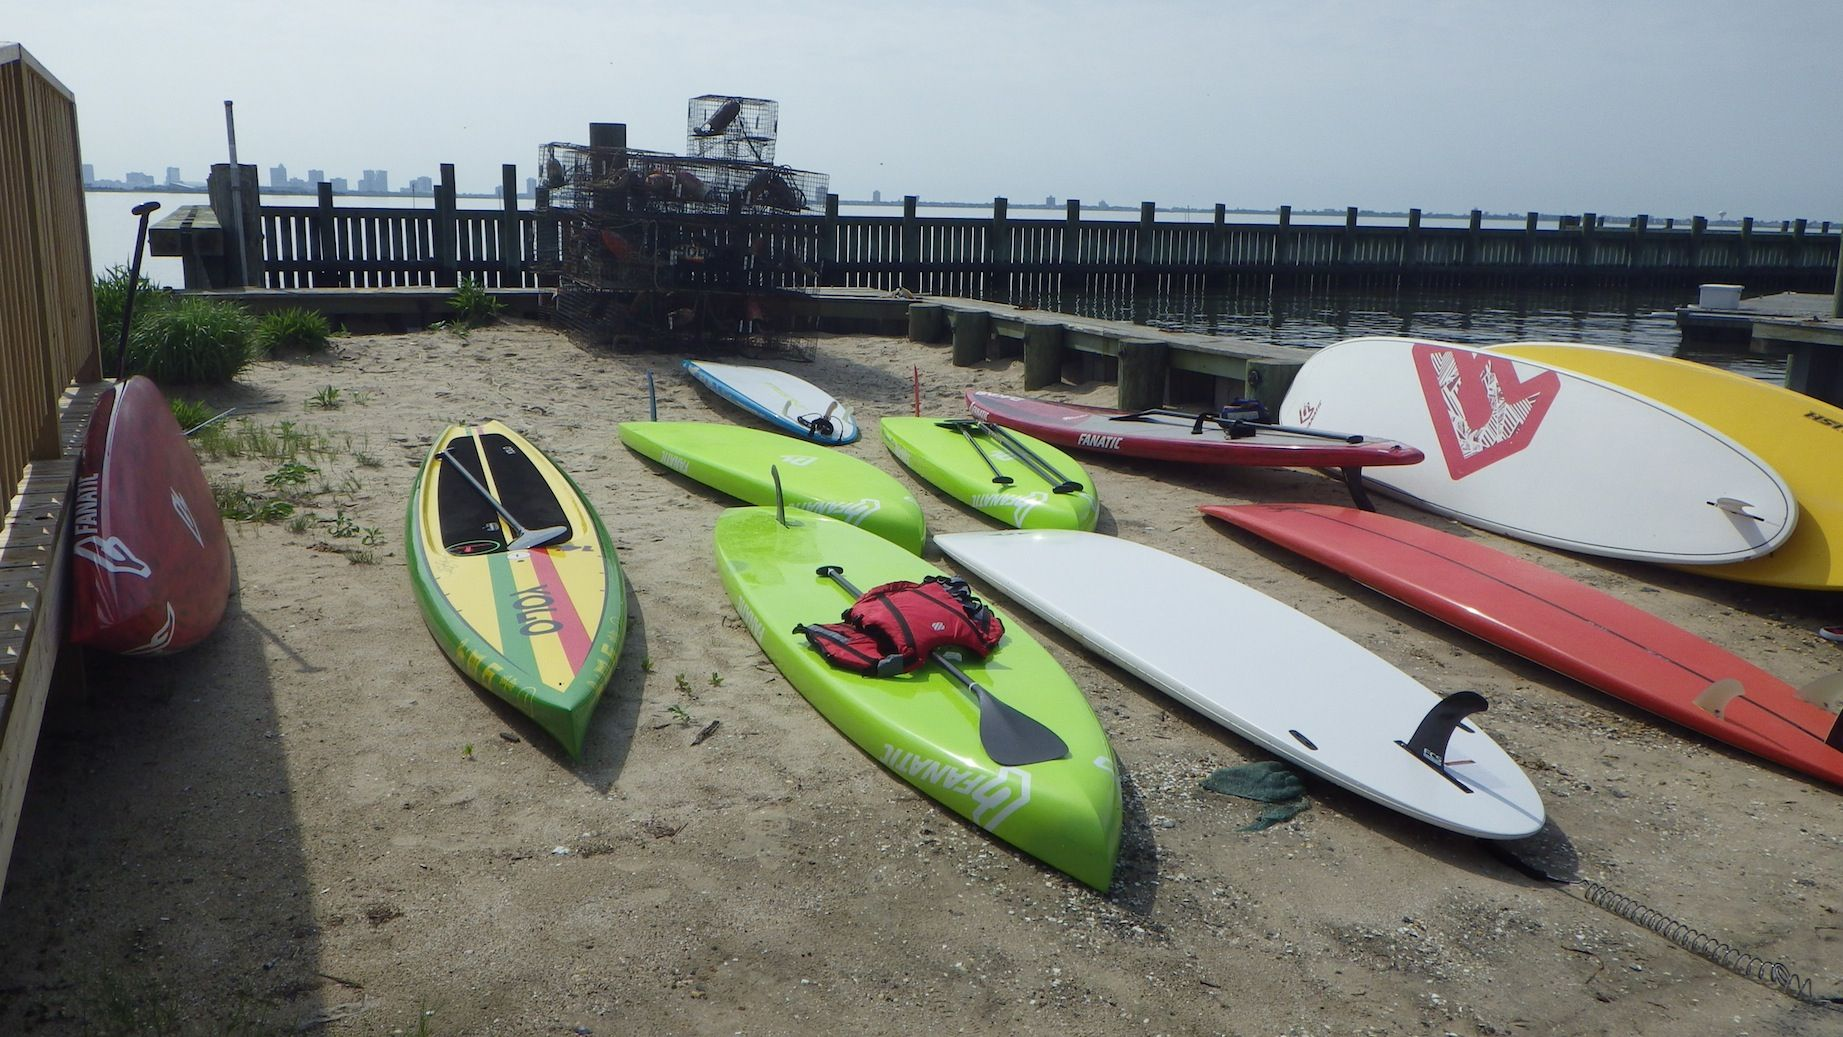 The boards of a bunch of the Donny Fund paddlers waiting for their riders to finish Breakfast at the Host Yacht Club of Pleasantville for the final leg of the Donny paddle back to the beach at Extreme Windsurfing in West Atlantic City